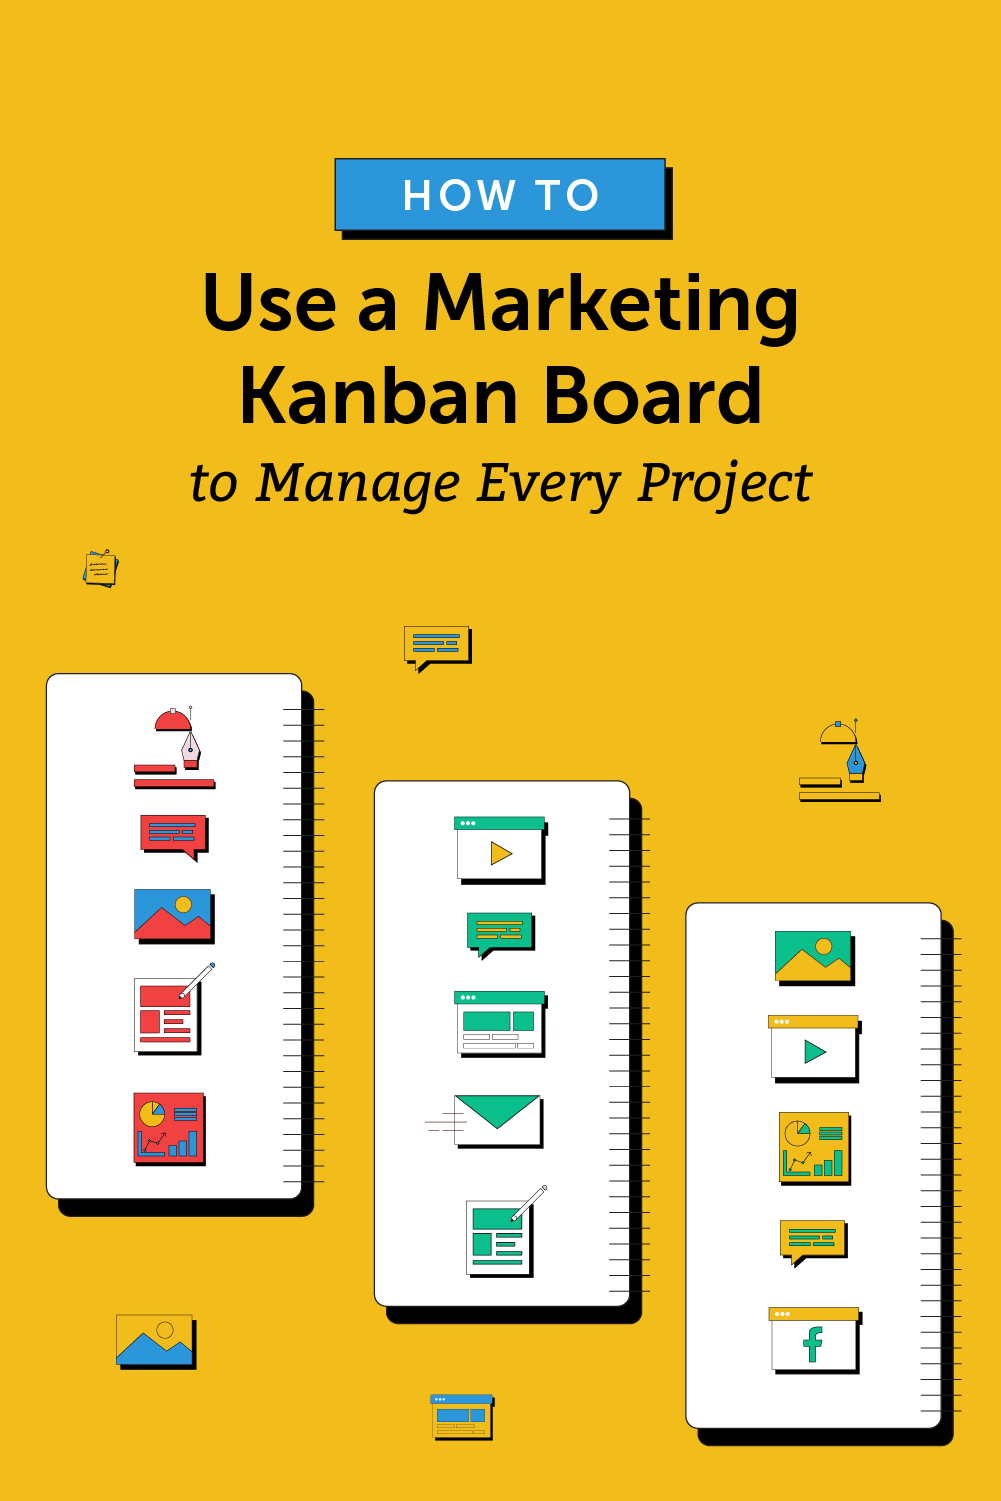 how to use a marketing kanban board to manage every